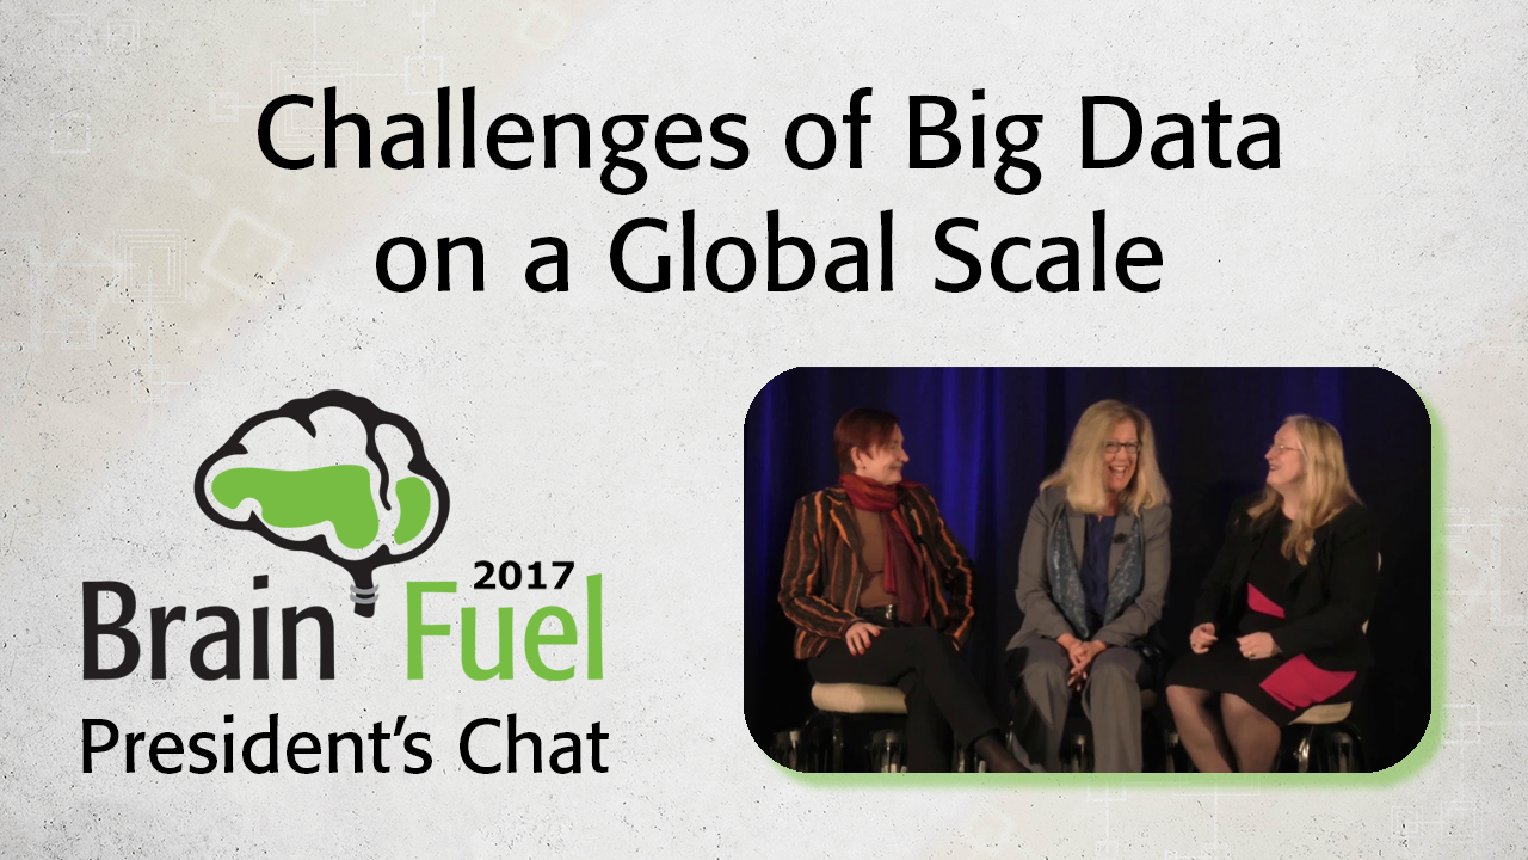 Challenges of Big Data on a Global Scale: 2017 Brain Fuel President's Chat